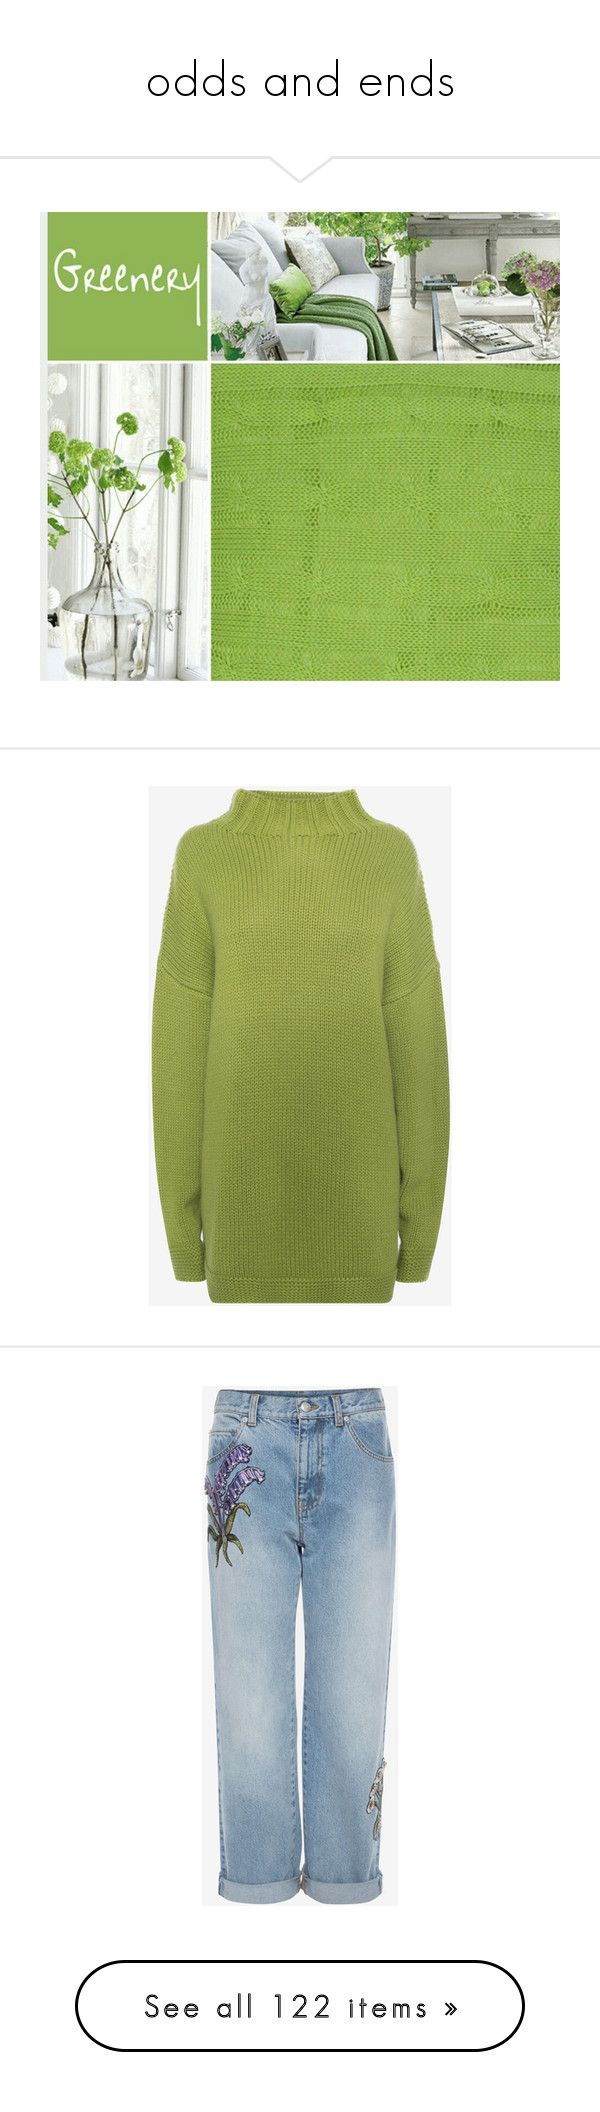 """""""odds and ends"""" by nanette-253 ❤ liked on Polyvore featuring tops, sweaters, leaf green, turtleneck sweater, cashmere sweater, oversized chunky knit sweater, oversized cashmere sweater, oversized green sweater, jeans and medium vintage wash"""